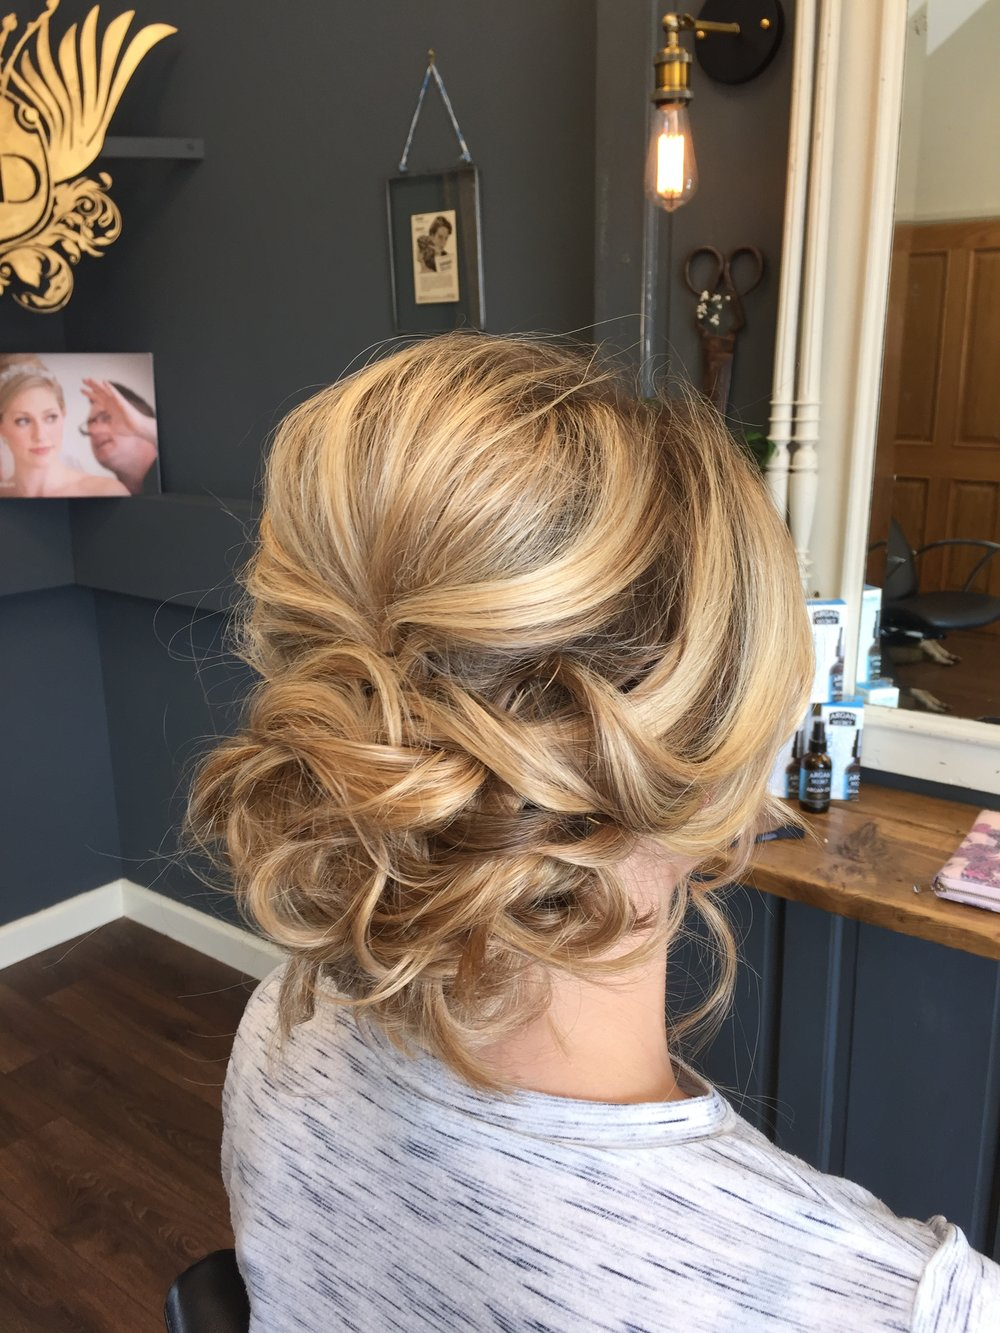 The Secret Salon Wedding Hair